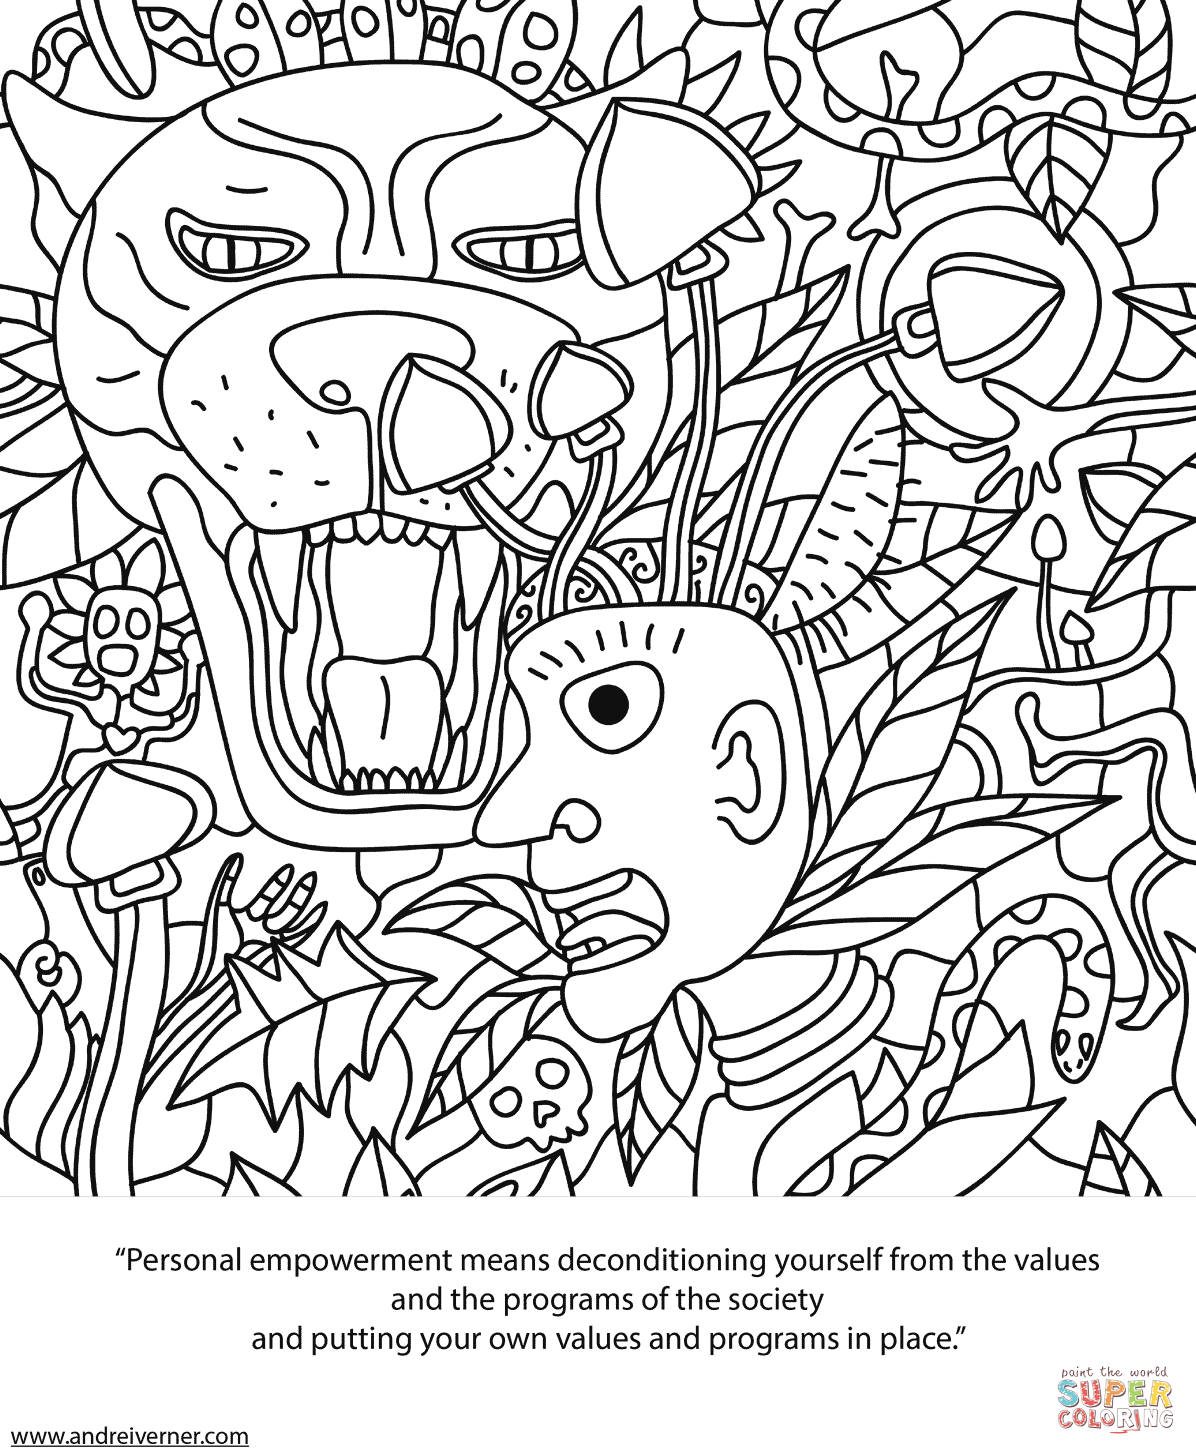 psychedelic coloring pages 314 best trippypsychedelic coloring pages images on coloring psychedelic pages